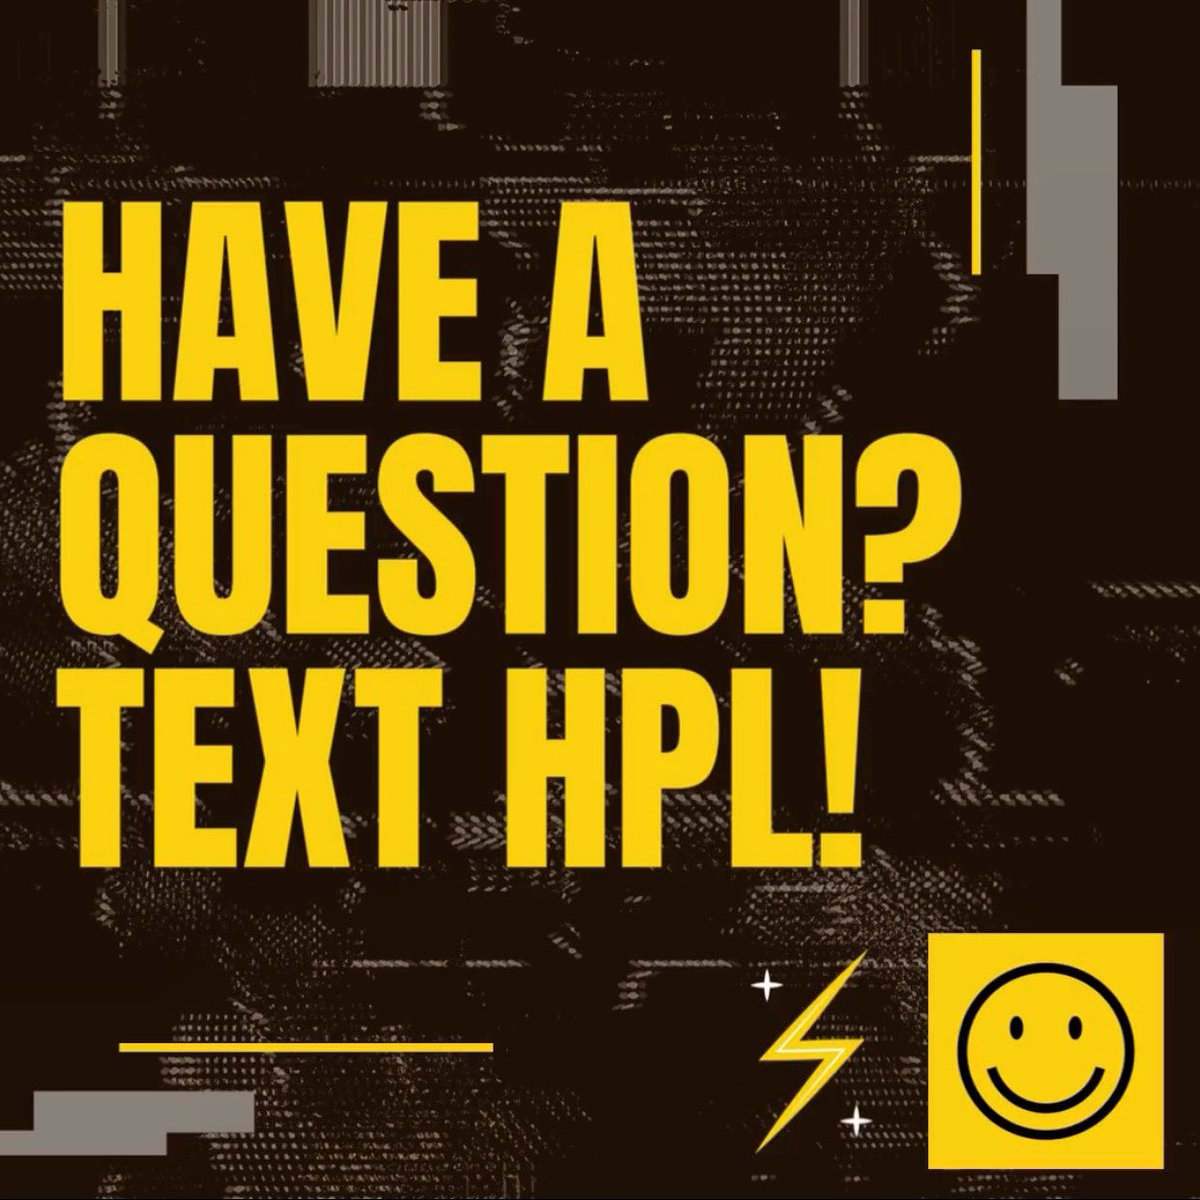 📣💬📲 Text @HPLCT!   If you have a question, you can now text us! Text 860-530-4376 and a librarian will respond immediately. If our chat is offline, the text will be answered as soon as possible. Get help accessing books, our online collections and all that HPL has to offer!😀